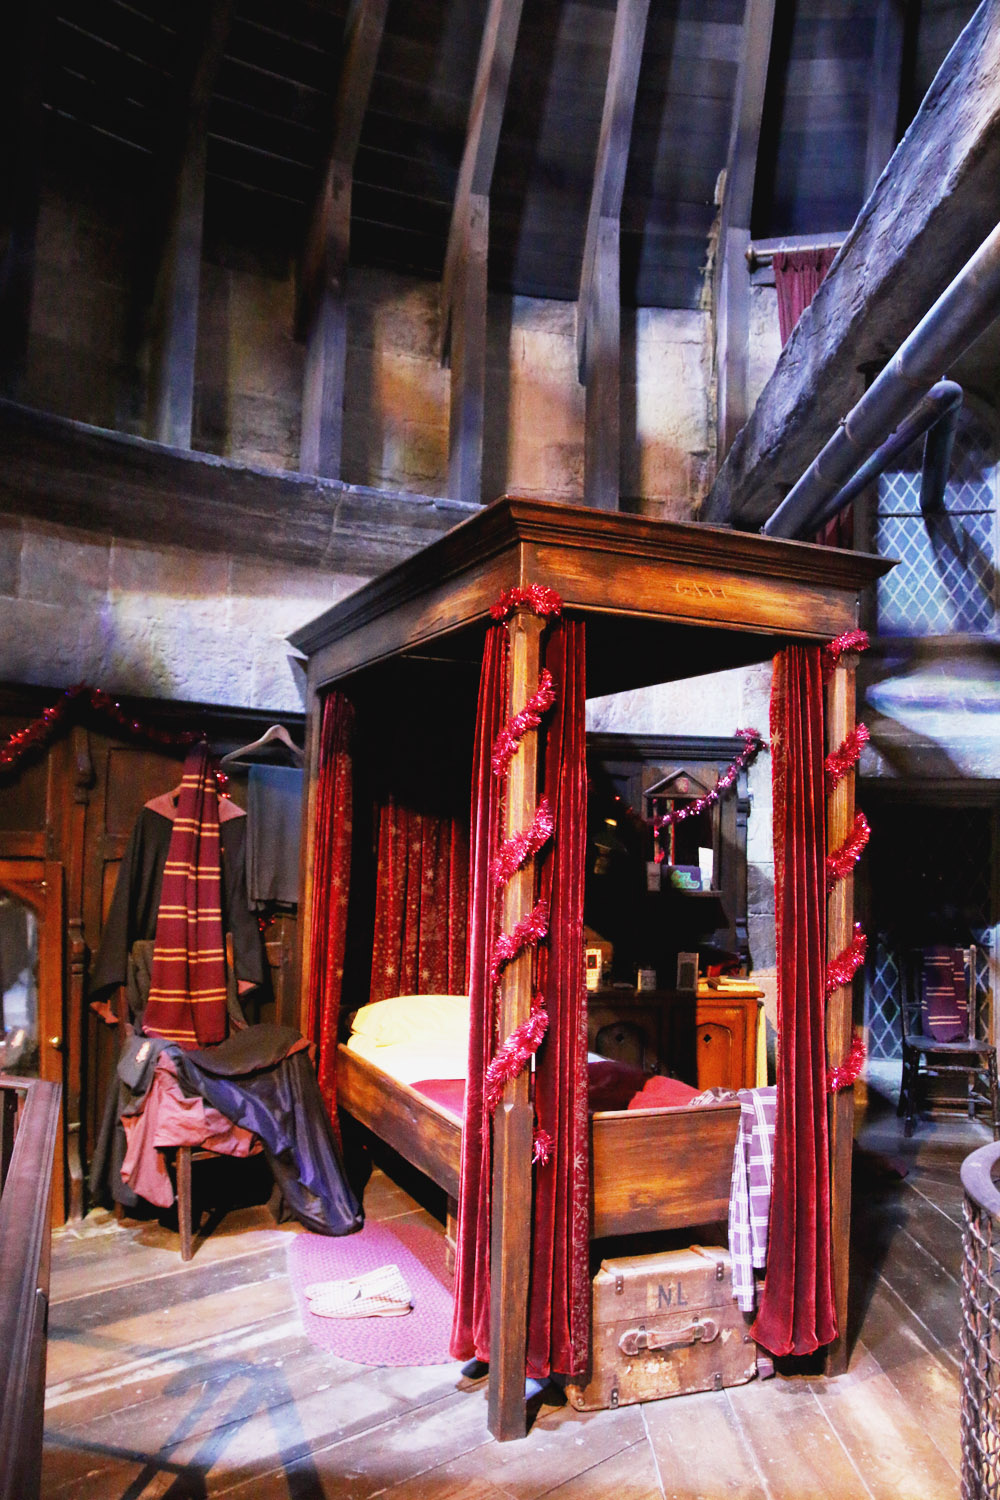 Harry Potter Warner Bros Studio Tour London Gryffindor Dormitory